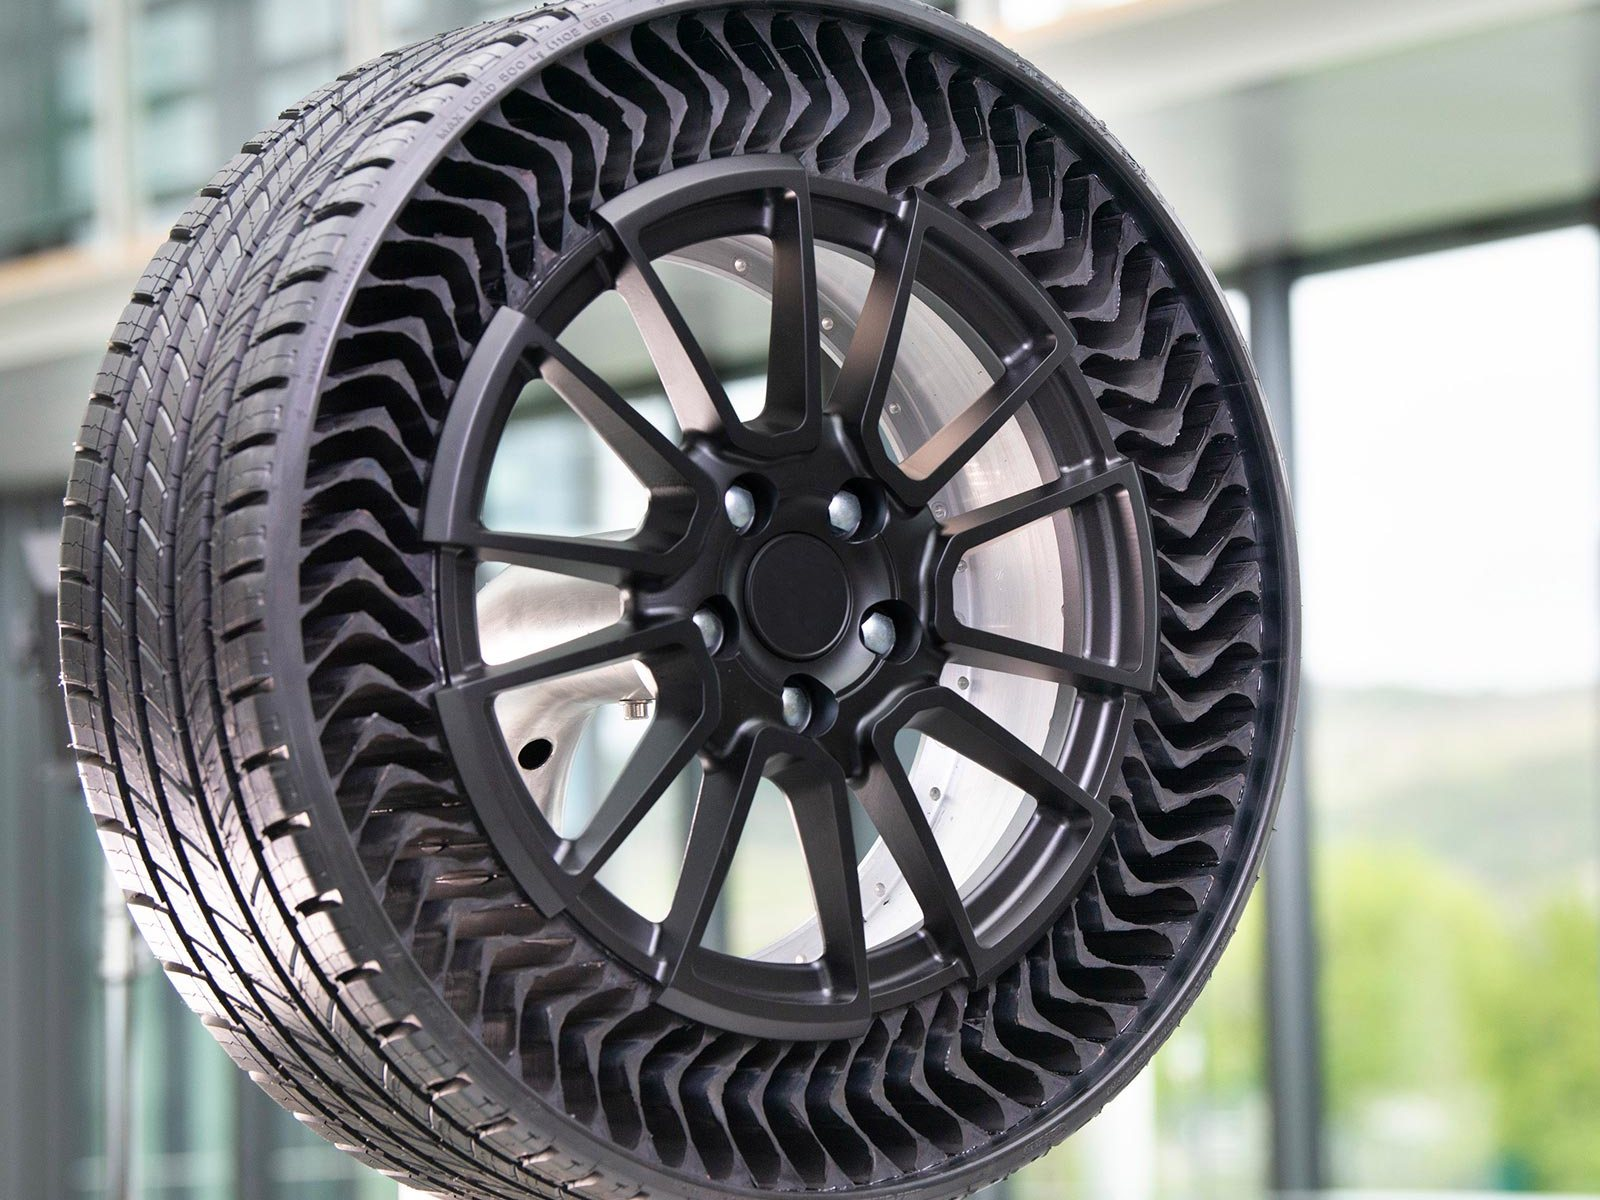 wheel technology michelin biobased 3D print